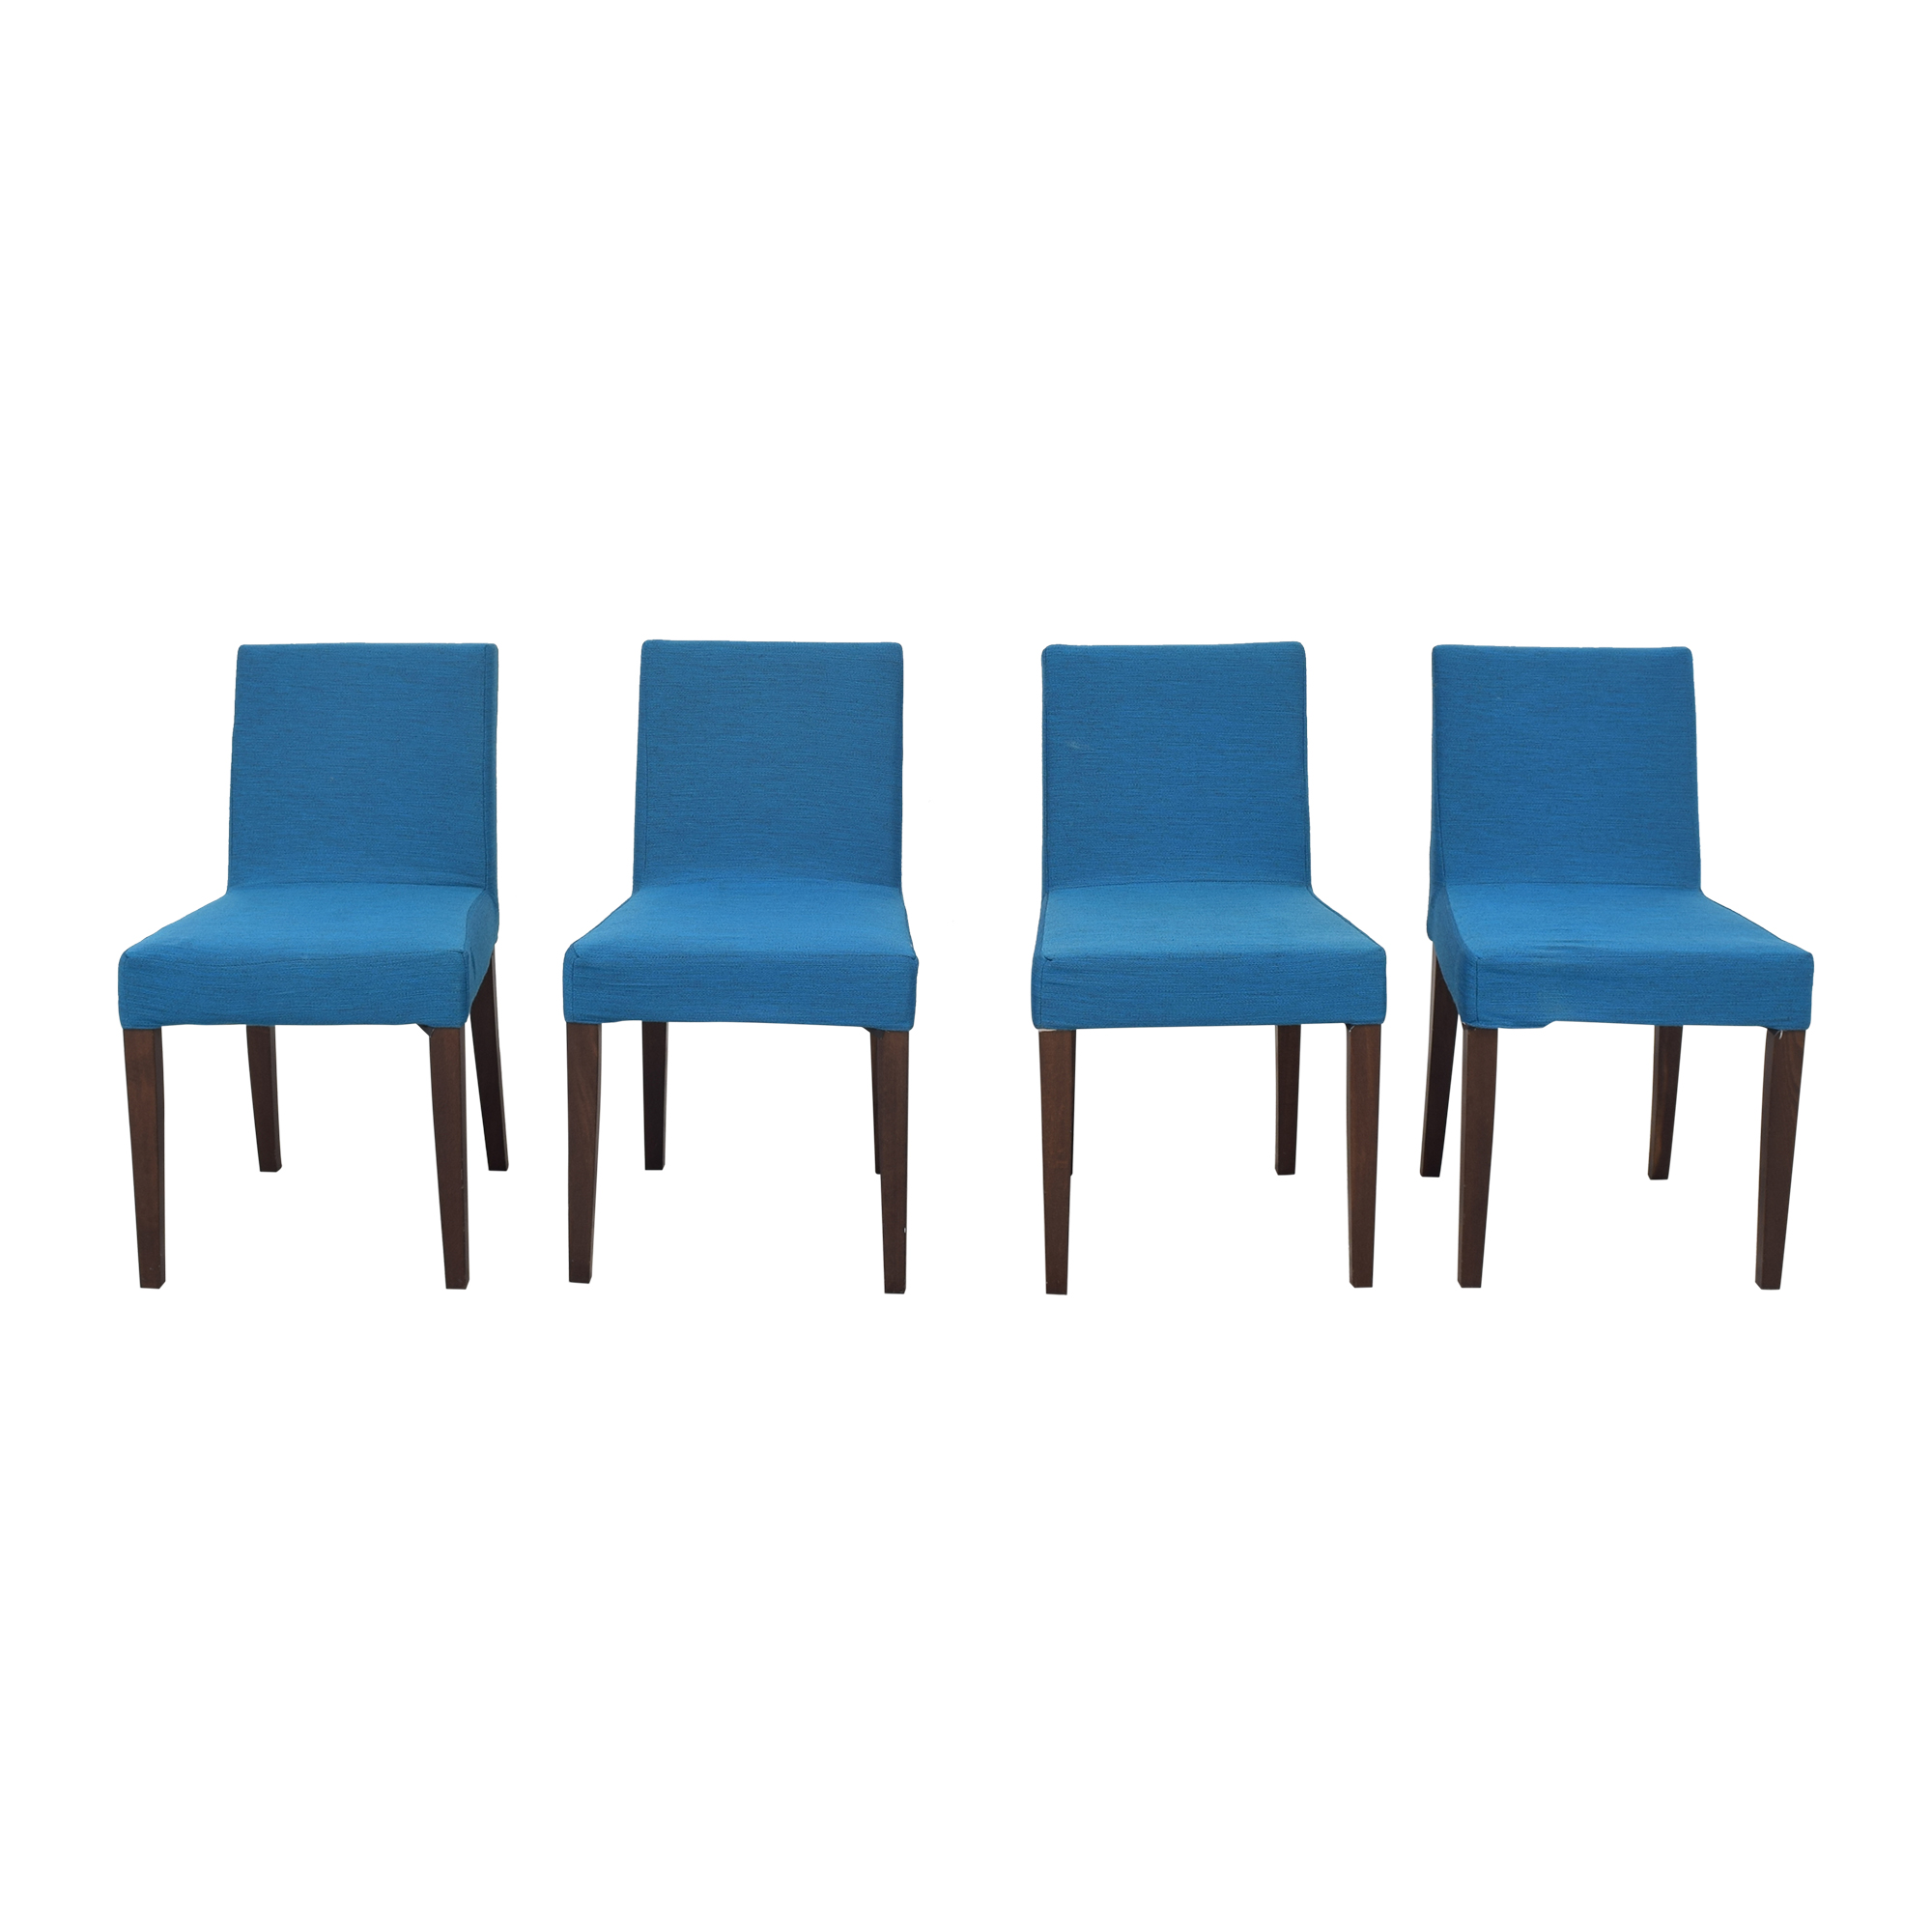 shop Ligne Roset Ligne Roset Didier Gomez French Line Dining Chairs online